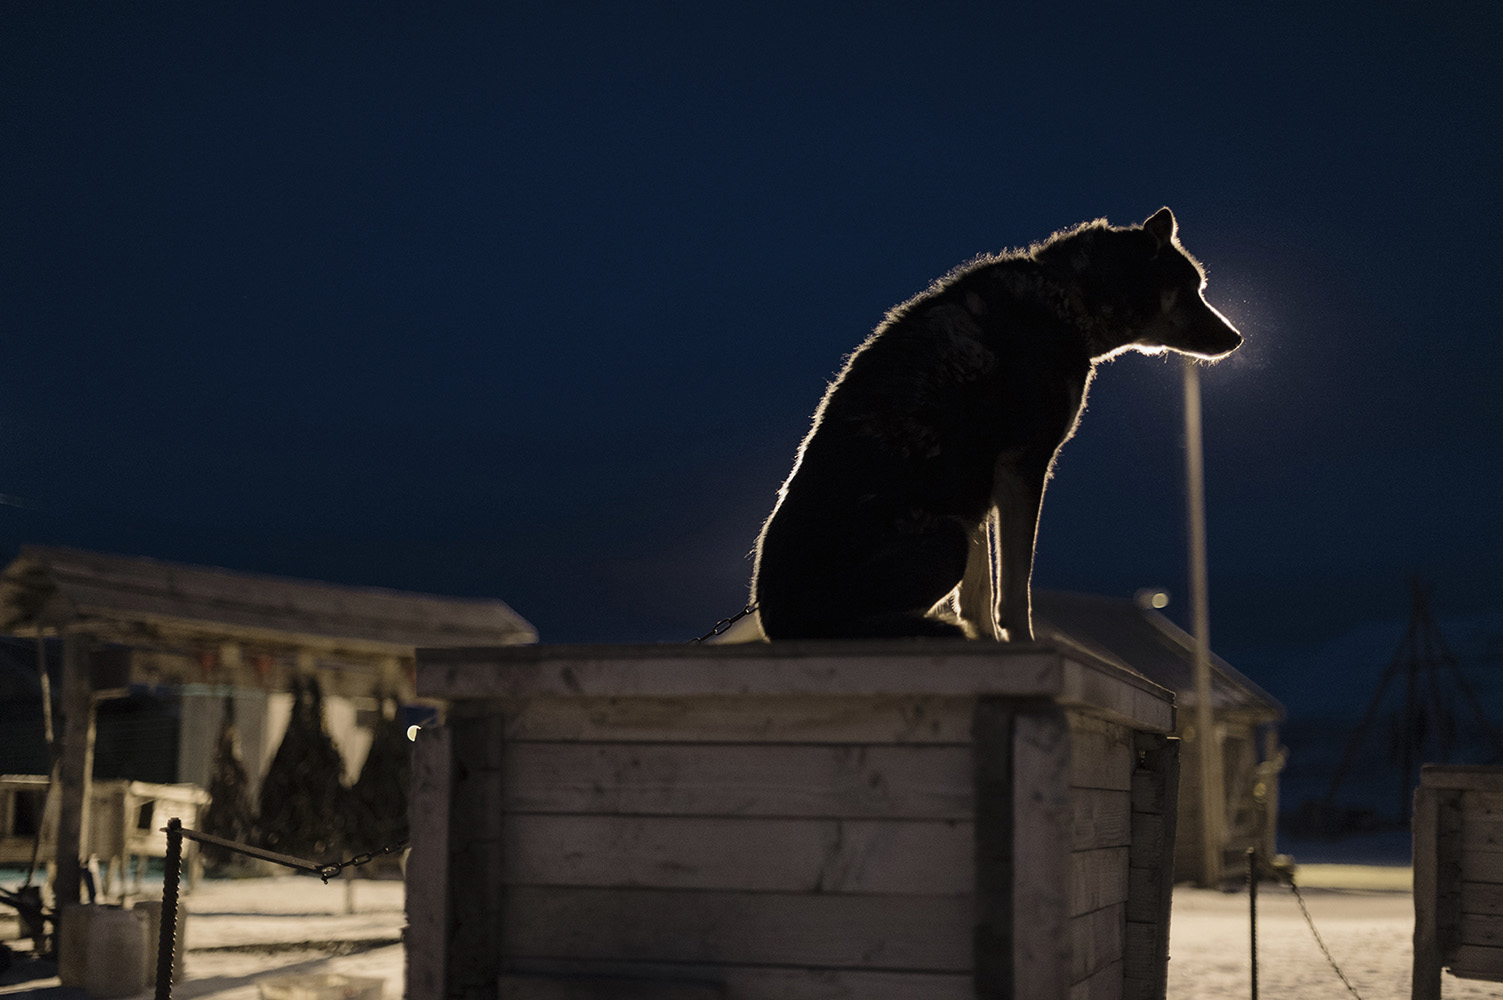 Alaskan Husky, sled dogs, in -18 degree Celsius (°C), during the dark period, Spitsbergen Longyearbyen is the most northern town in the world with its 78°13'N Latitude.